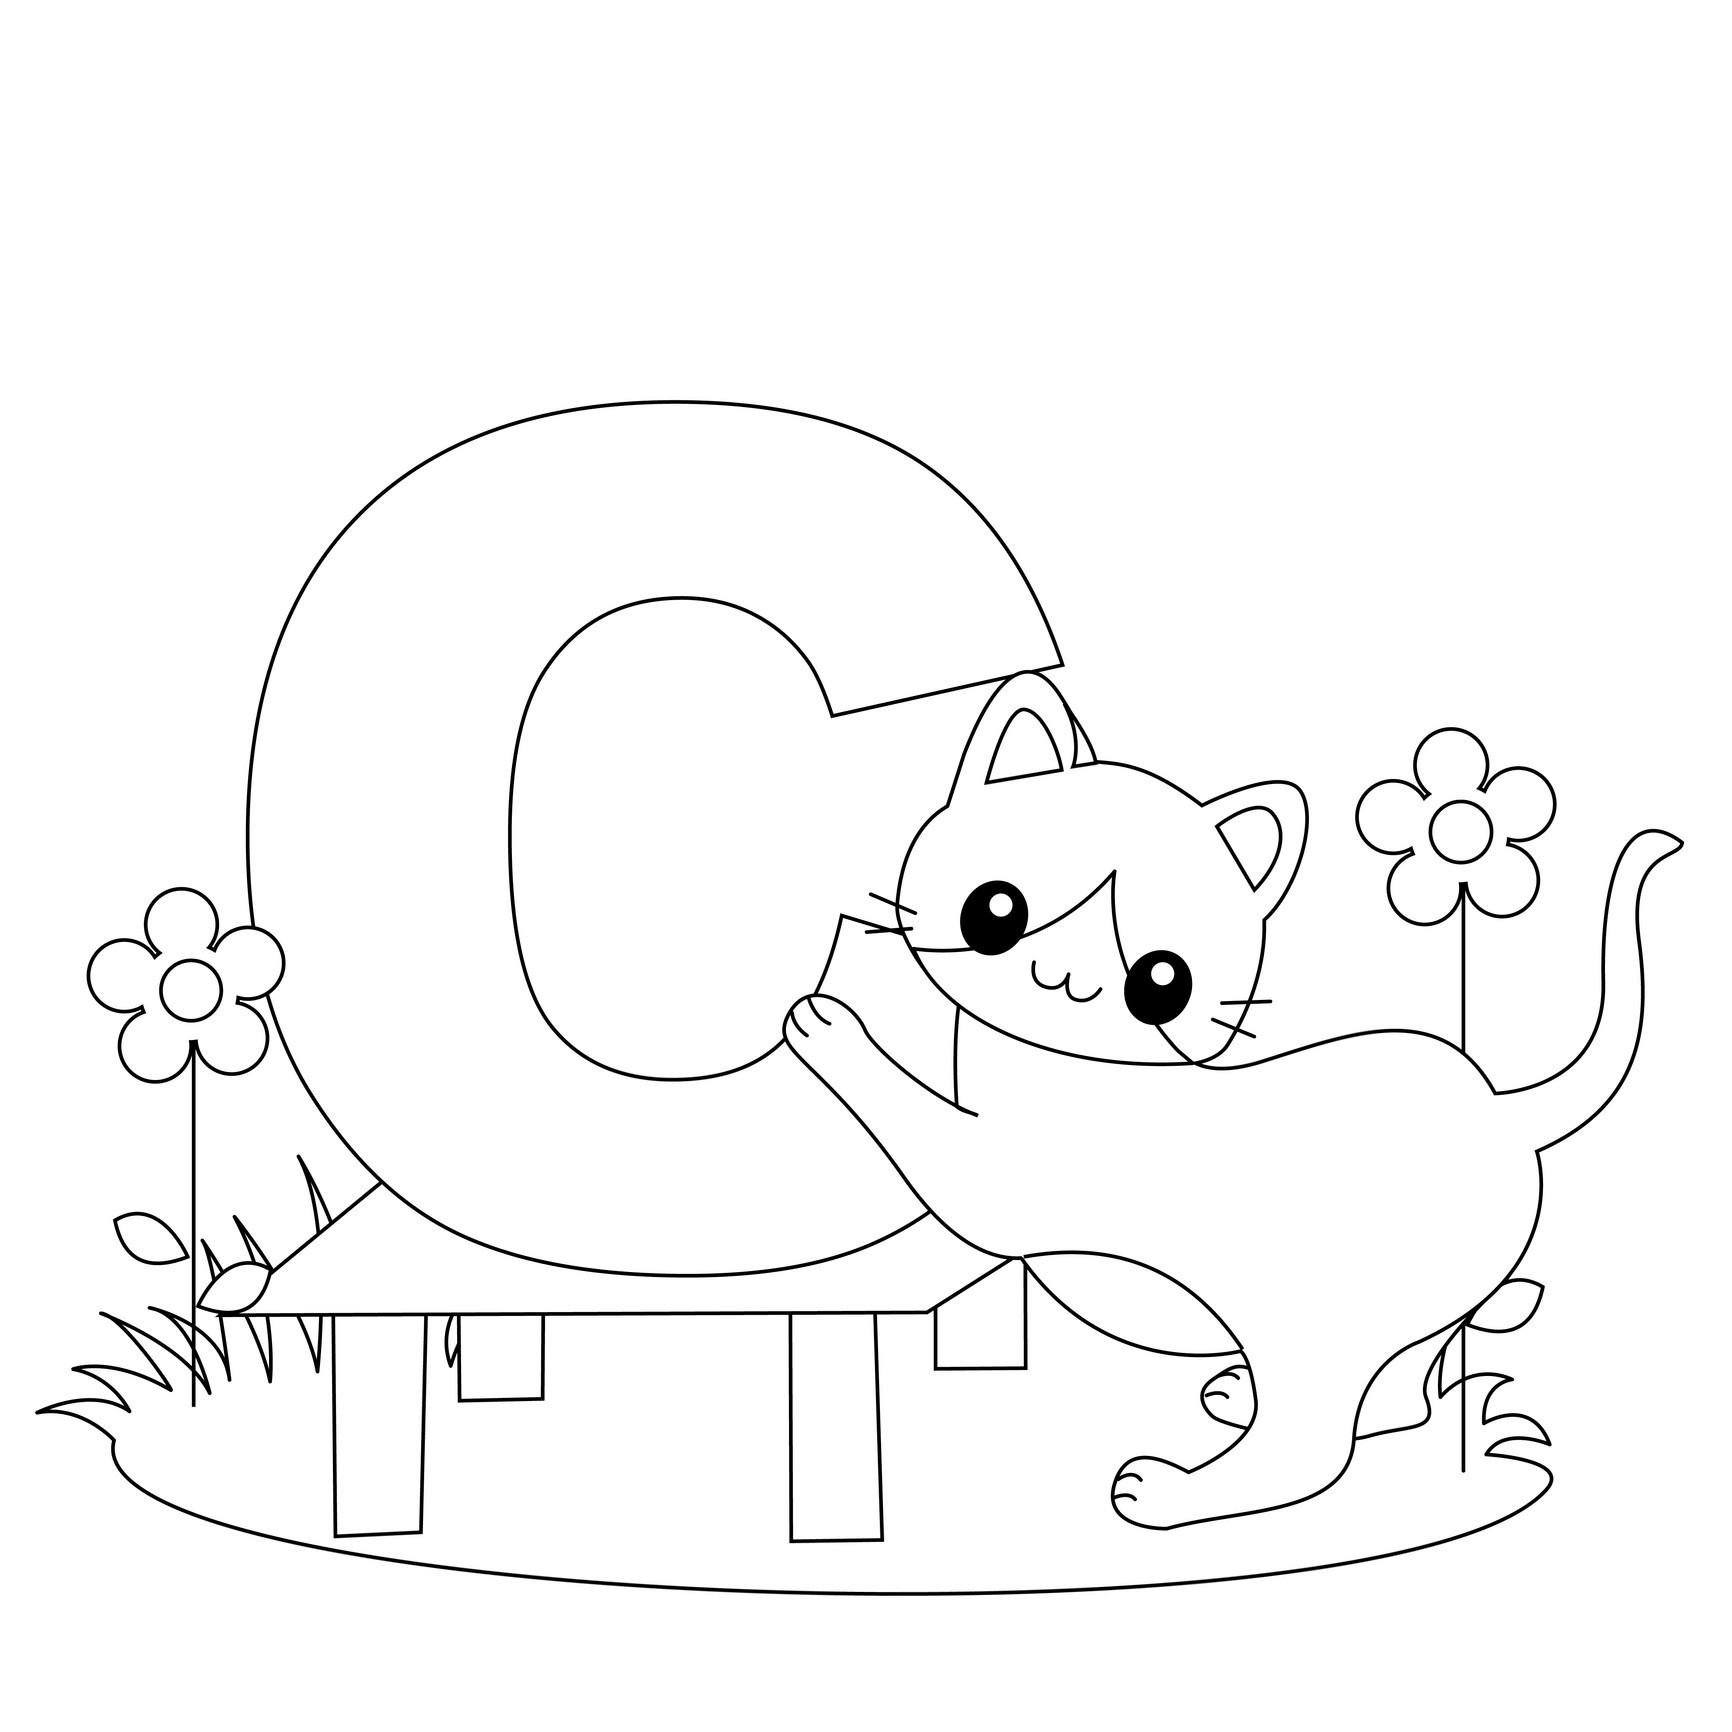 1732x1732 Revolutionary Free Coloring Pages With Letters Of In The Alphabet